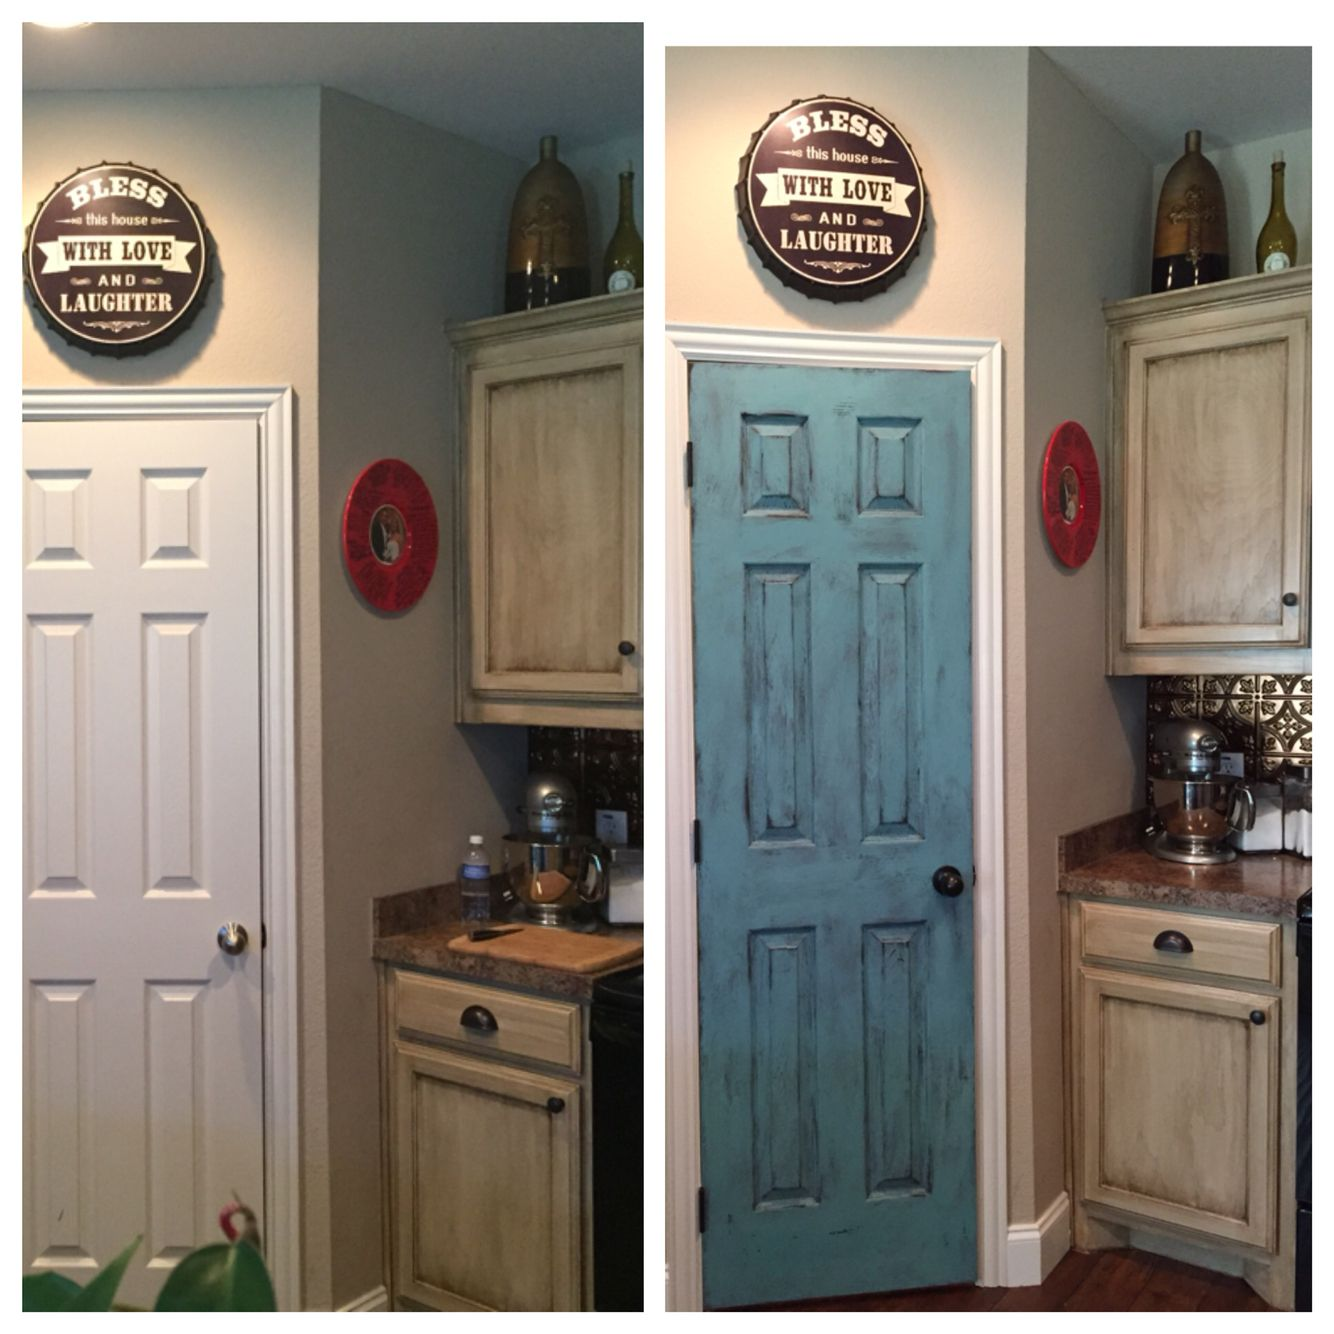 Glazed Kitchen Cabinets Vs White: What A Huge Difference A Little Paint Can Make! Plain